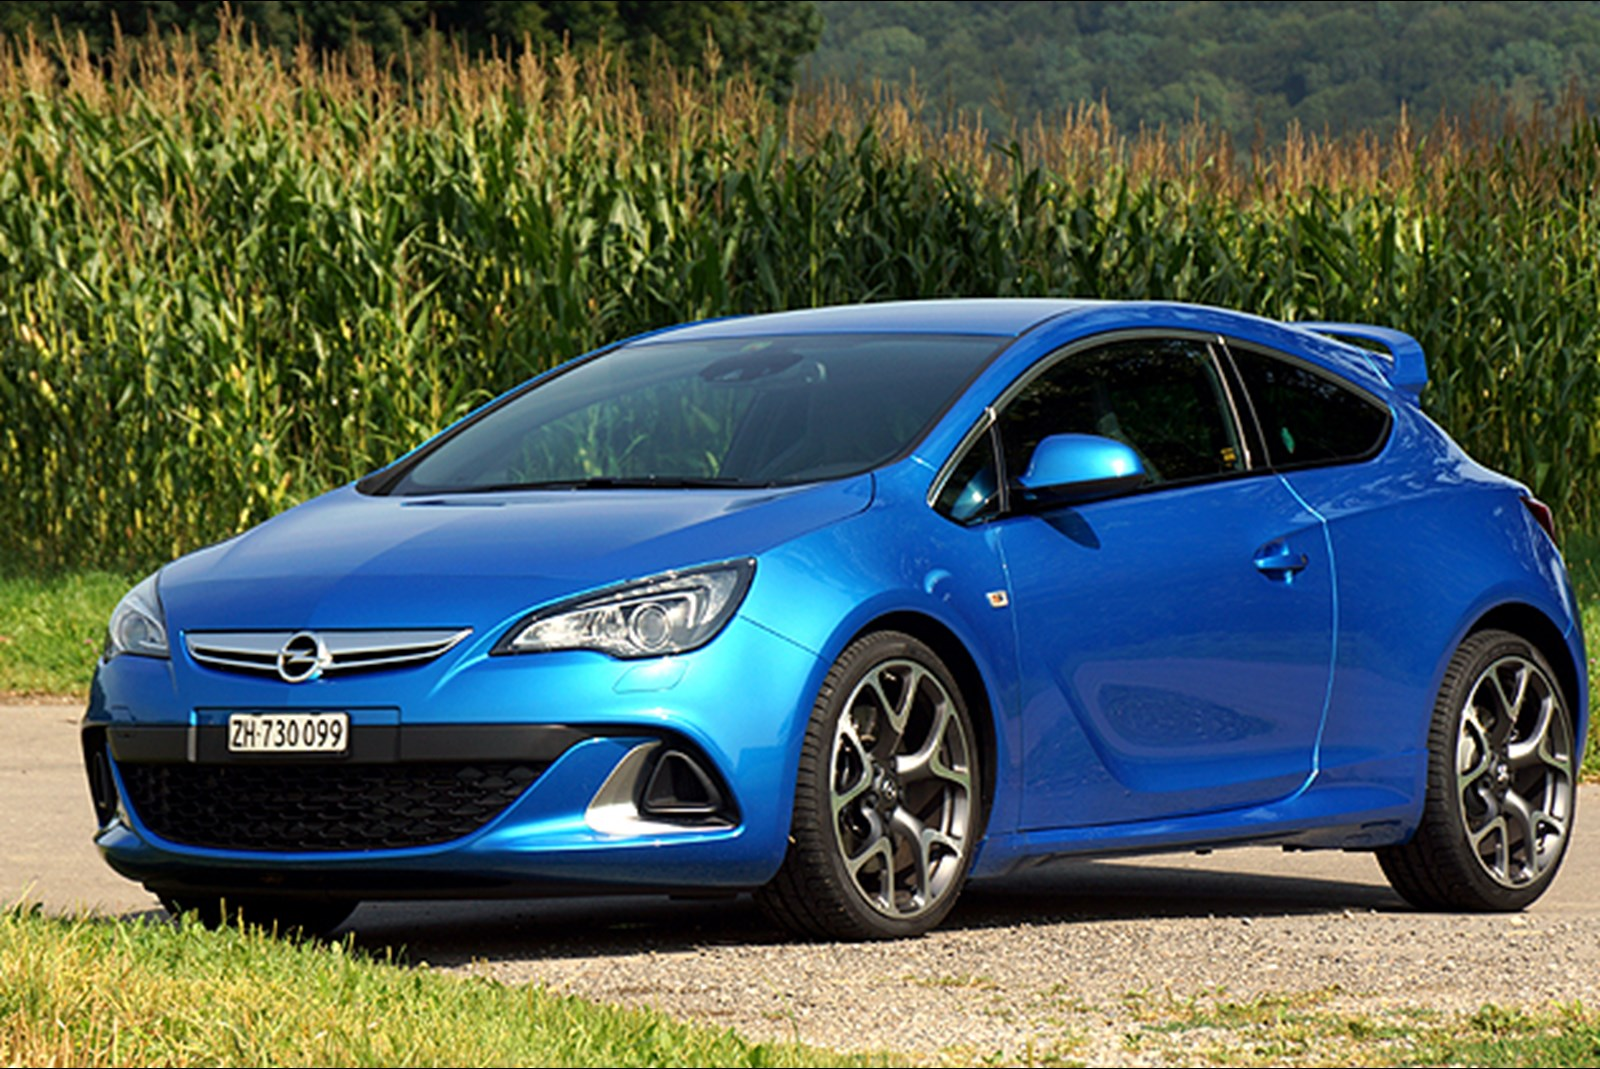 opel astra opel astra opc 2012 im test. Black Bedroom Furniture Sets. Home Design Ideas